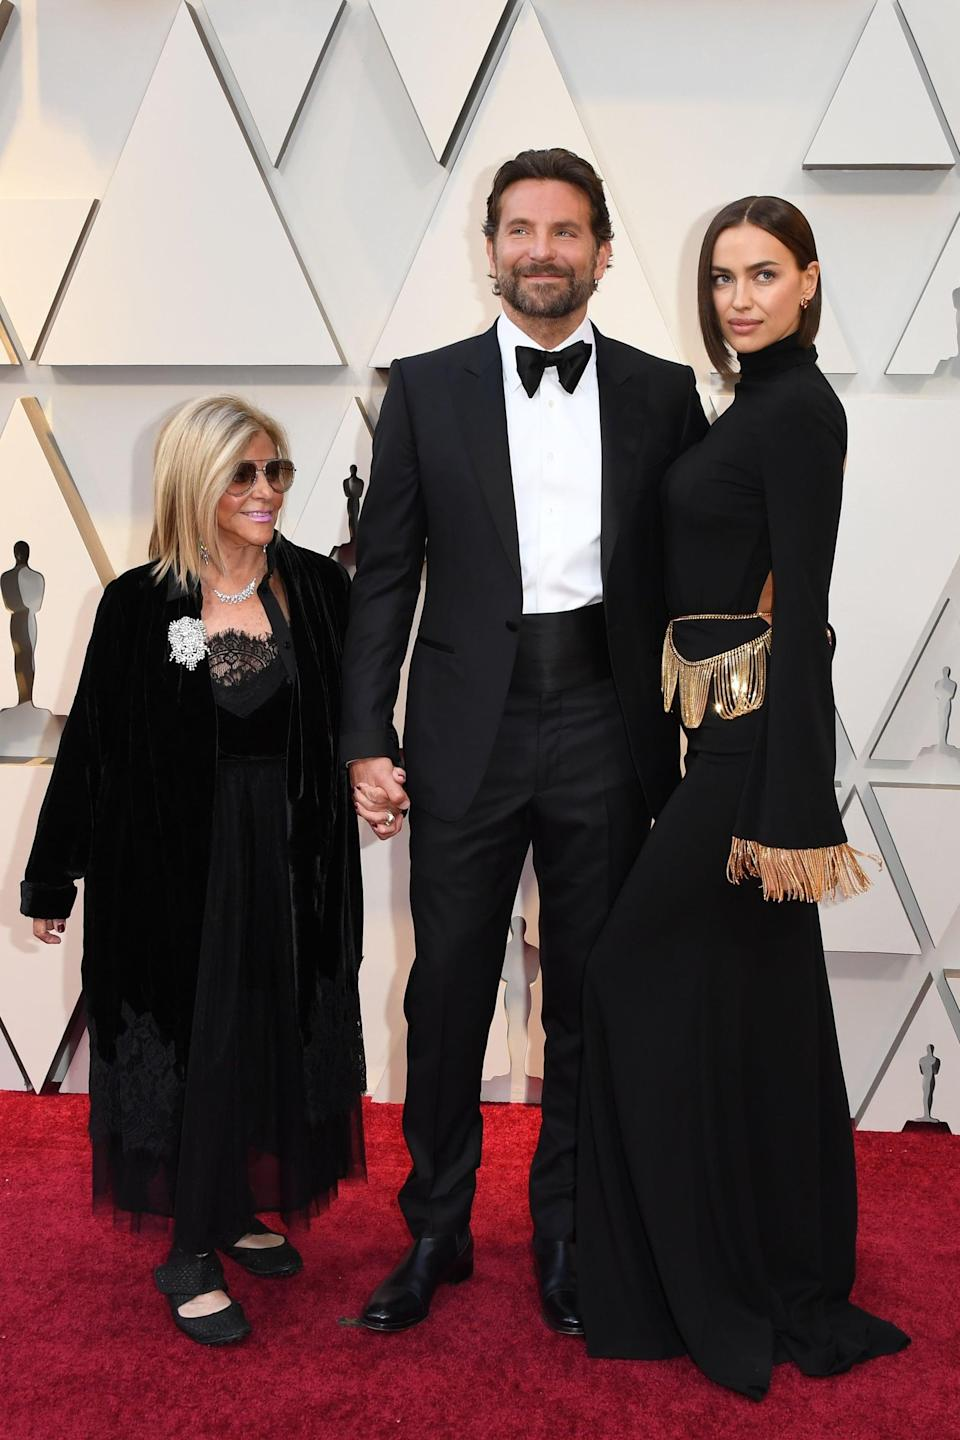 <p>Bradley is wearing Tom Ford with Christian Louboutin shoes and Irina is wearing Burberry.</p>